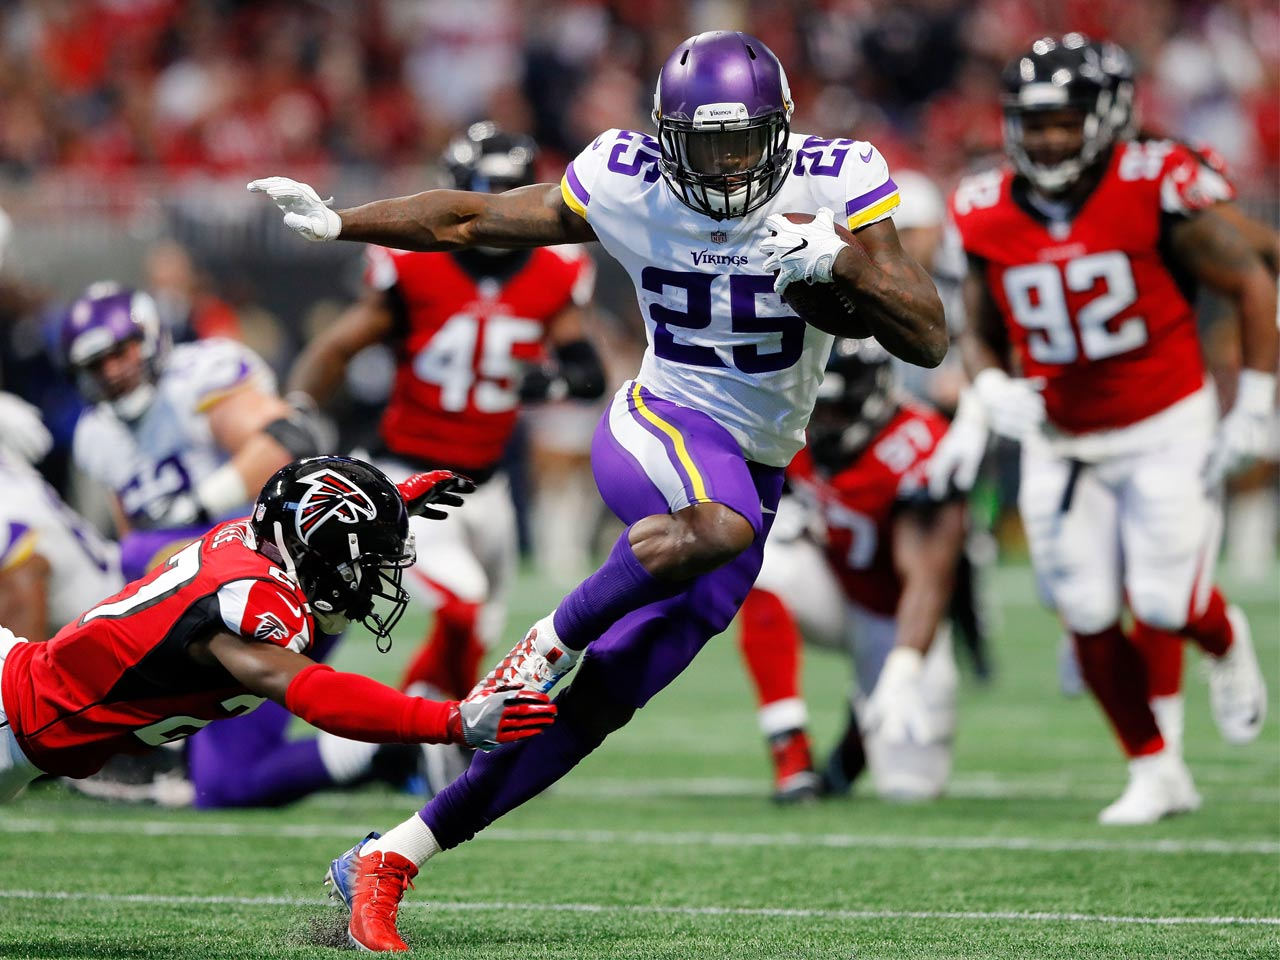 f2f4cf6e0 The Vikings are the NFC  8217 s top seed